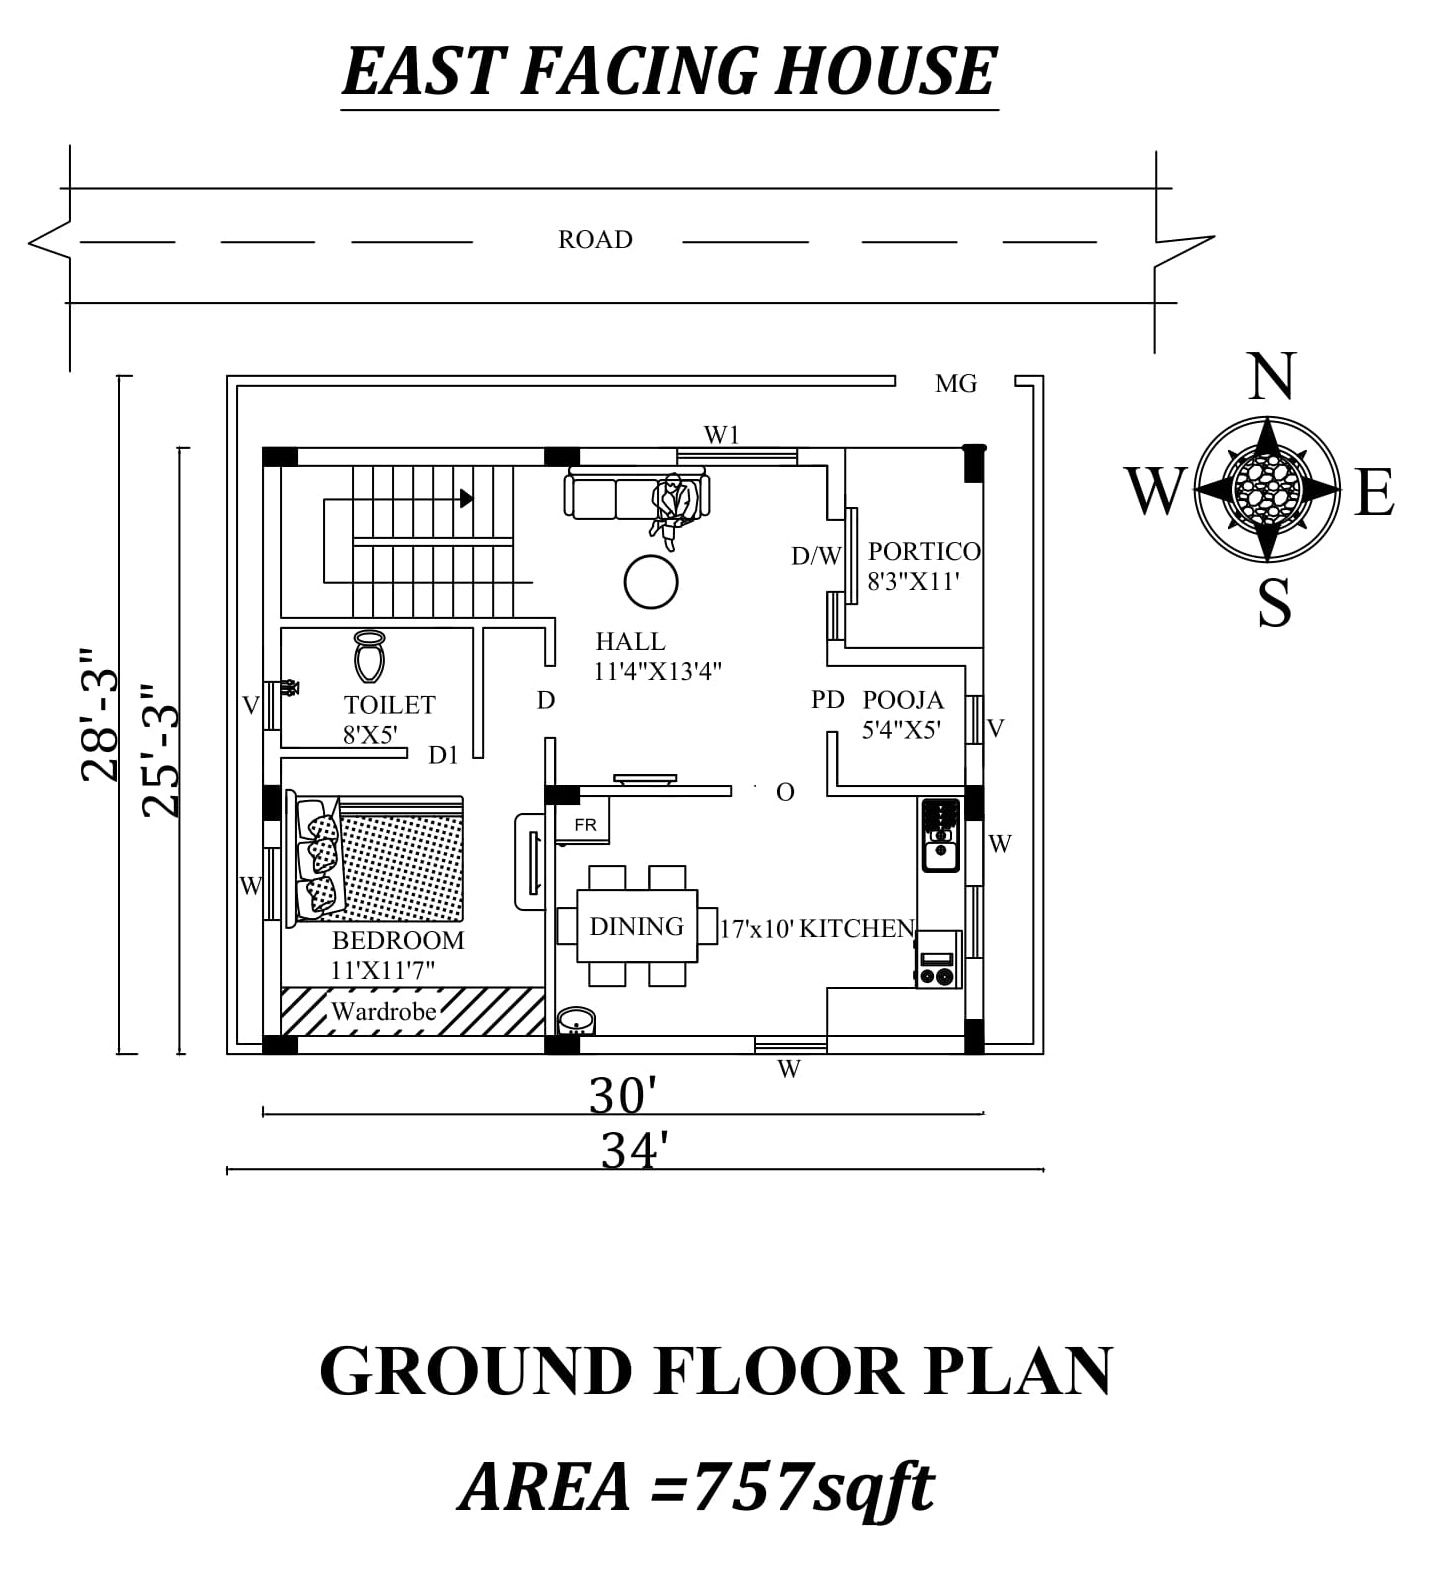 34 X28 3 Ground Floor East Facing House Plan As Per Vastu Shastra Autocad Dwg And Pdf File Details 2bhk House Plan House Plans My House Plans